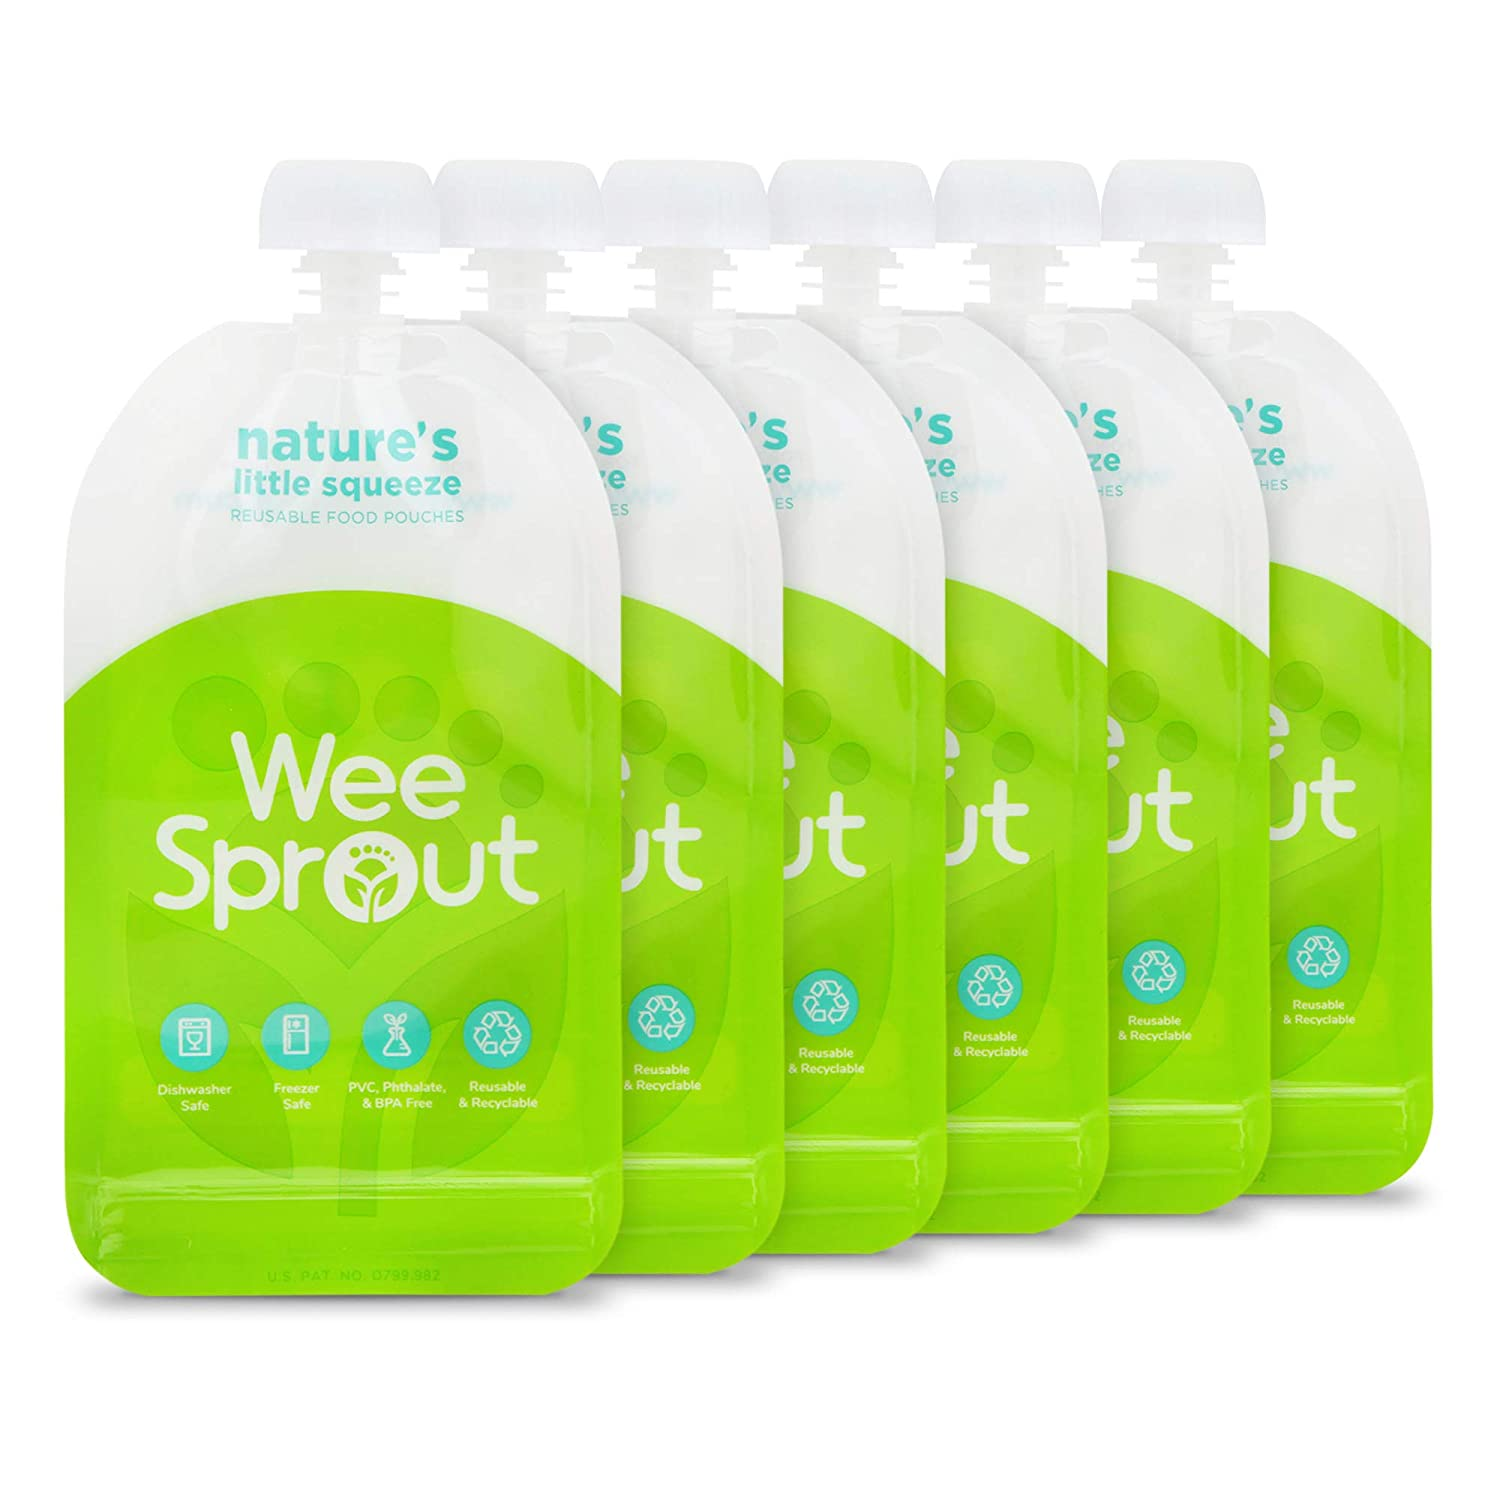 WeeSprout Double Zipper Reusable Food Pouches | 6 Pack 5 fl oz Size Pouches | Green